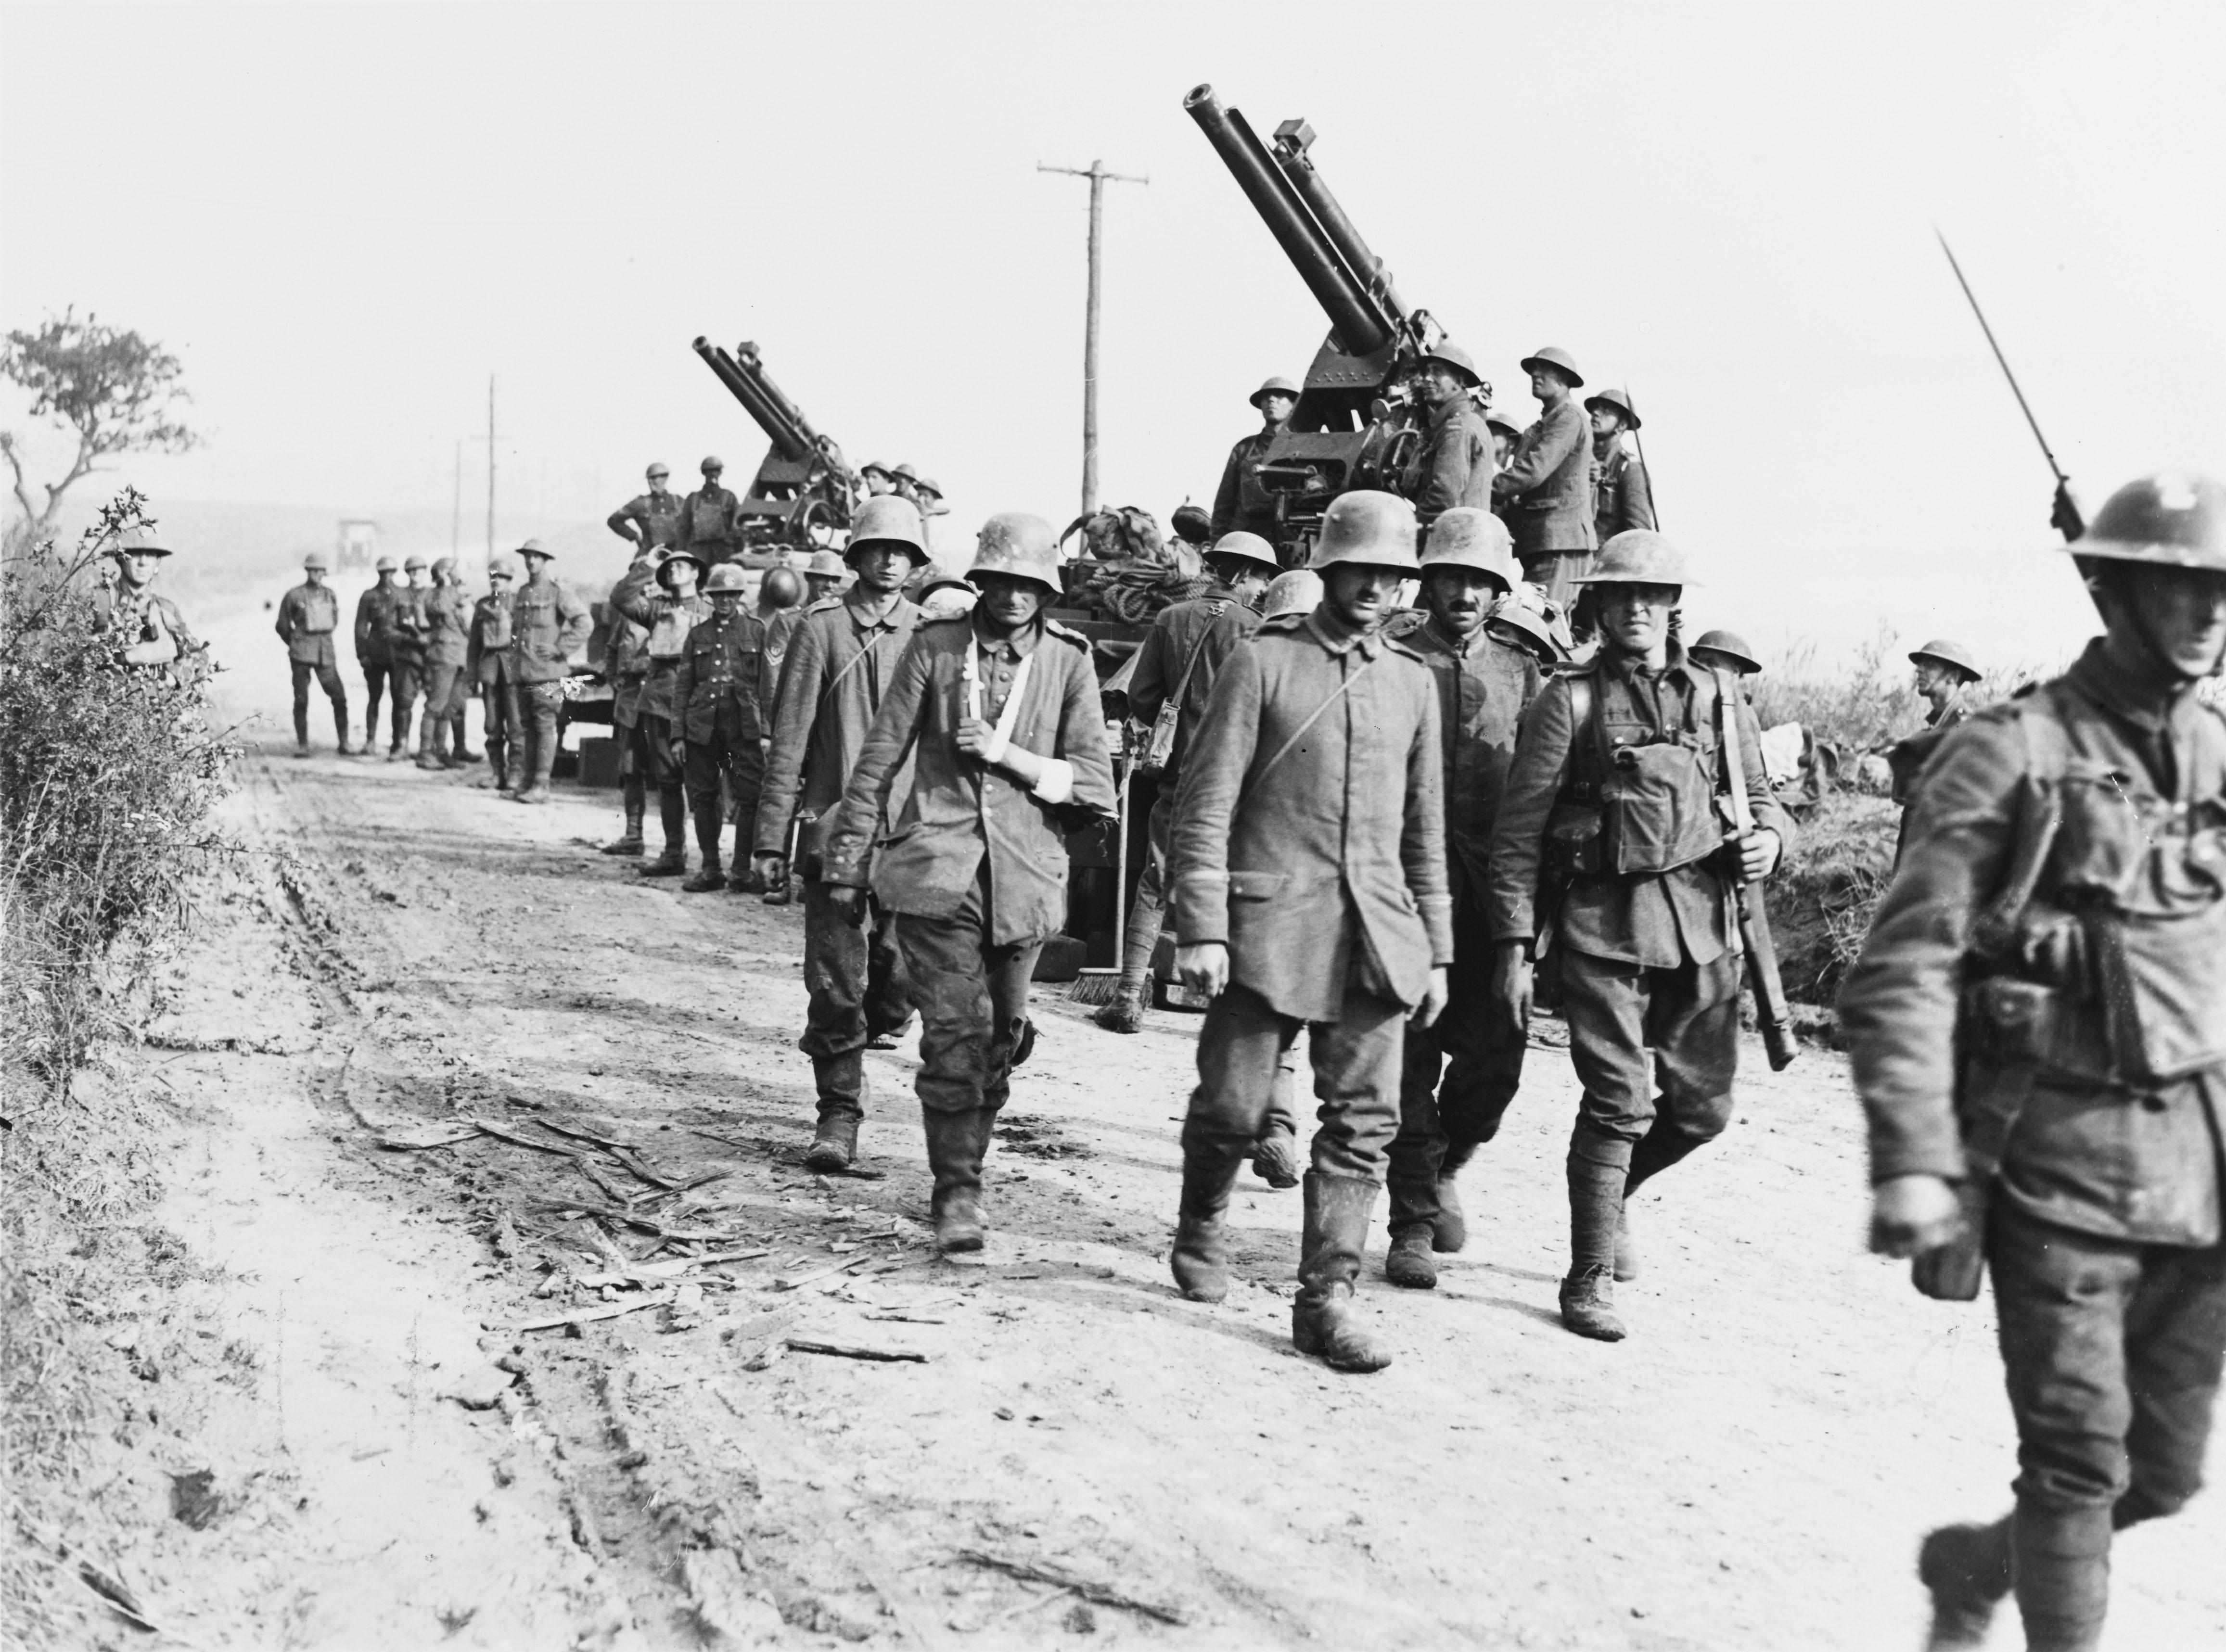 German prisoners traipse past Allied anti-aircraft positions near Méricourt-l'Abbé, August 1918. The battle of Amiens fired the starting-gun on a succession of Allied triumphs on the western front that would end in ultimate victory on 11 November. (Photo by Alamy)